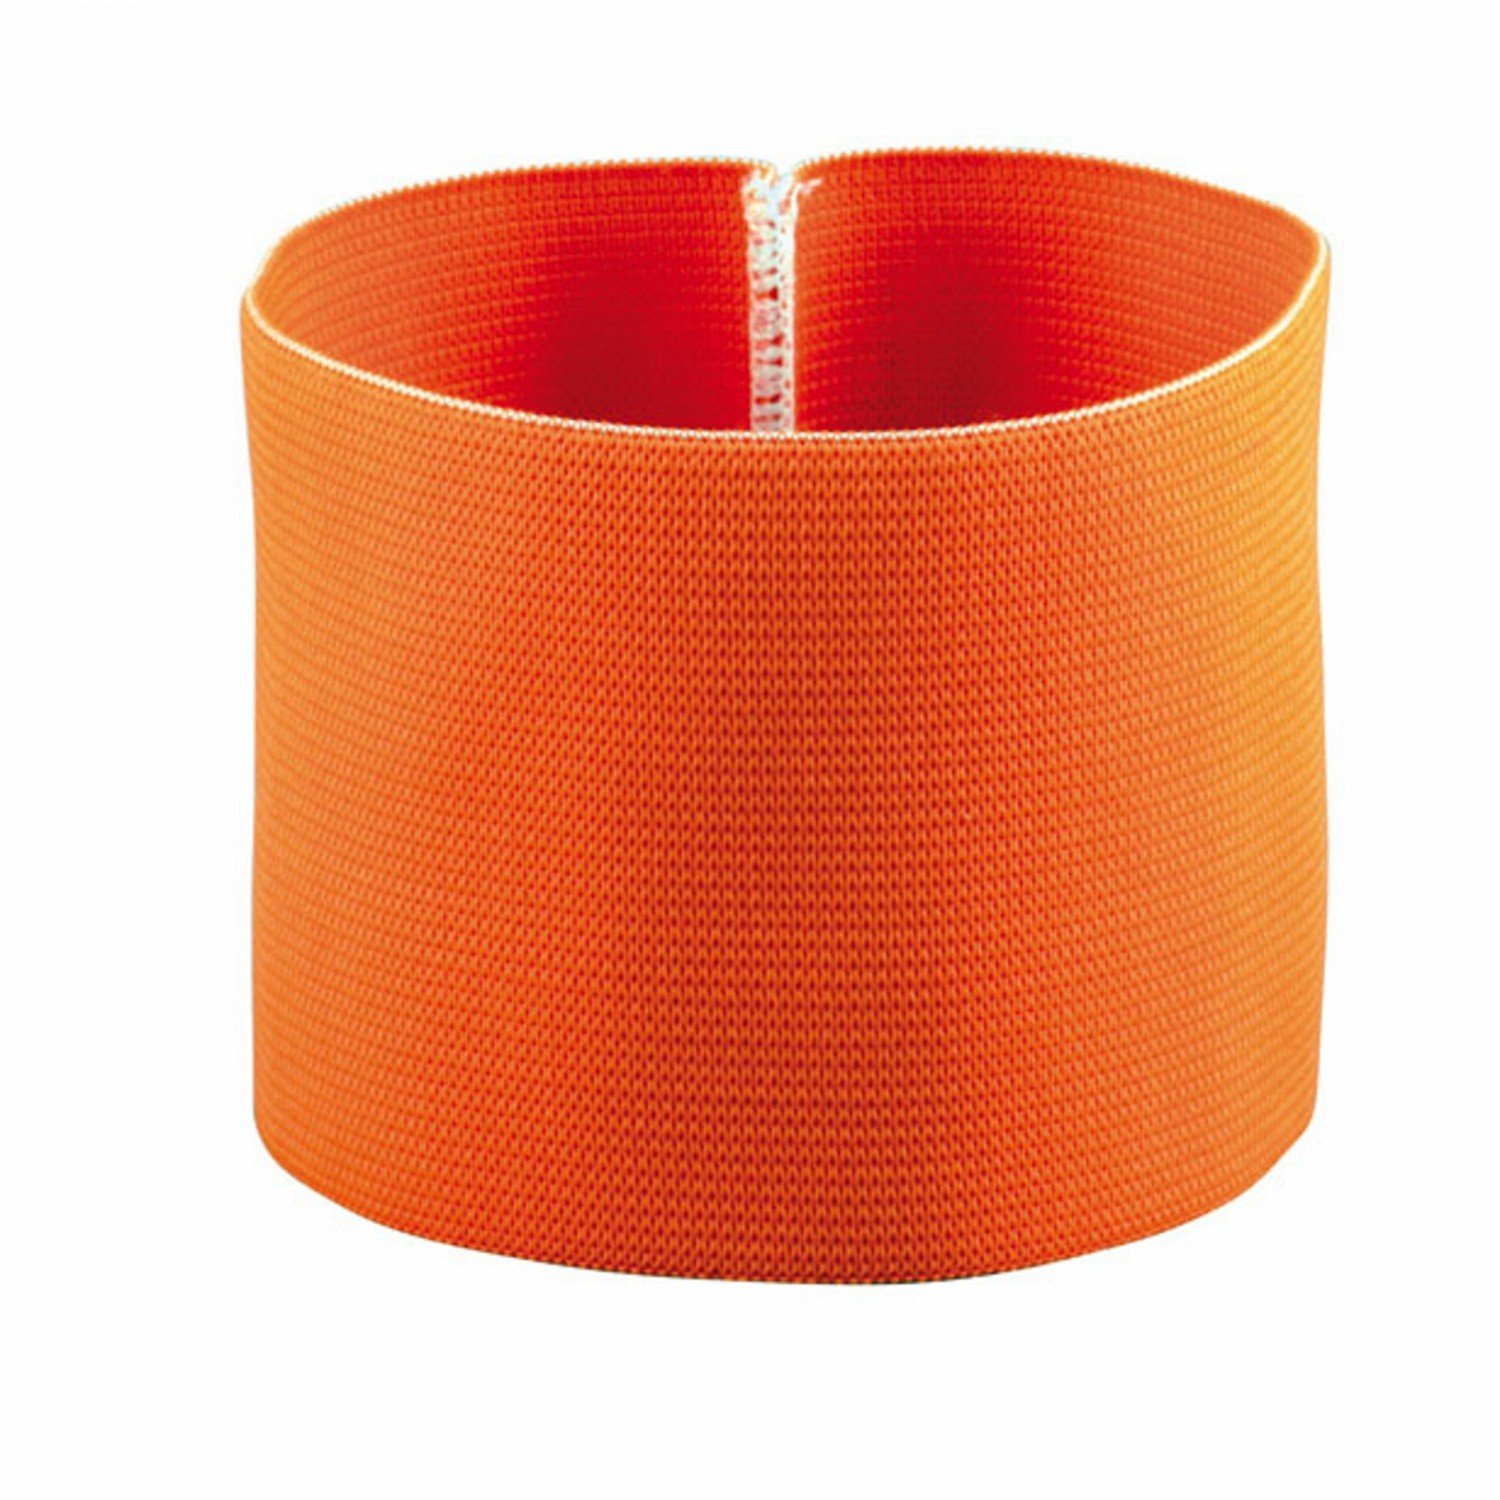 Derbystar Neutral Kapitänsbinde, Neonorange, One Size DERAK|#Derbystar 4088040700